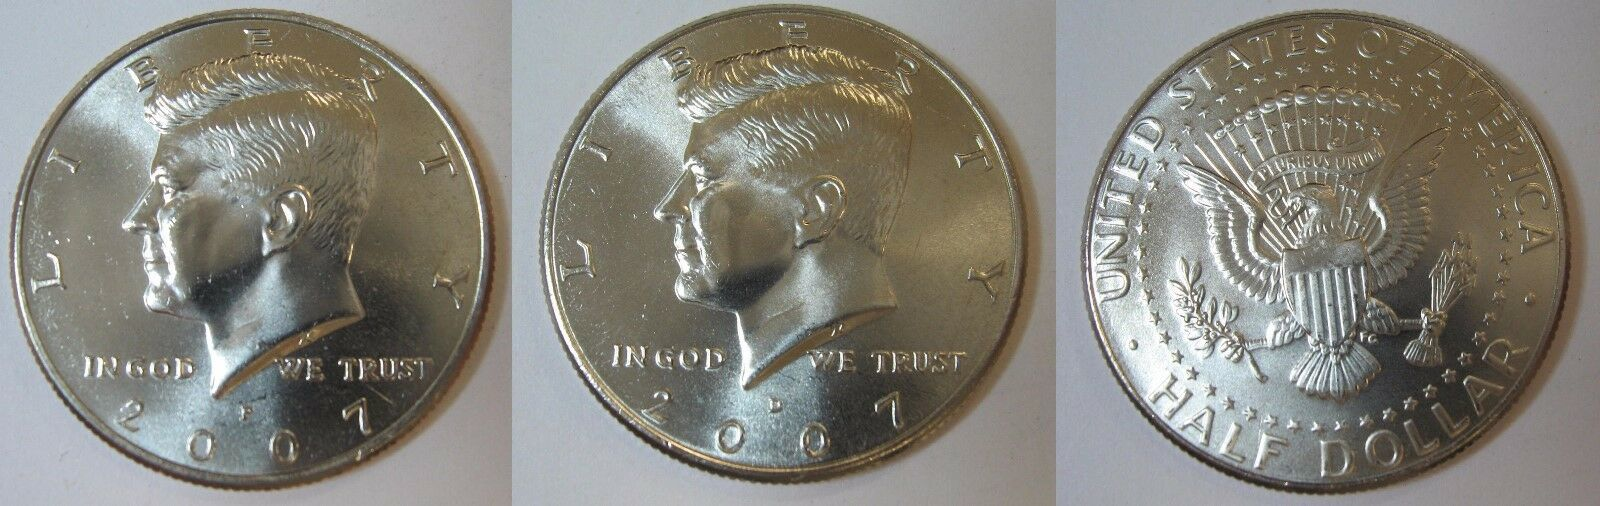 2007 P and D  BU Kennedy Half Dollar from US Mint Roll CP2435